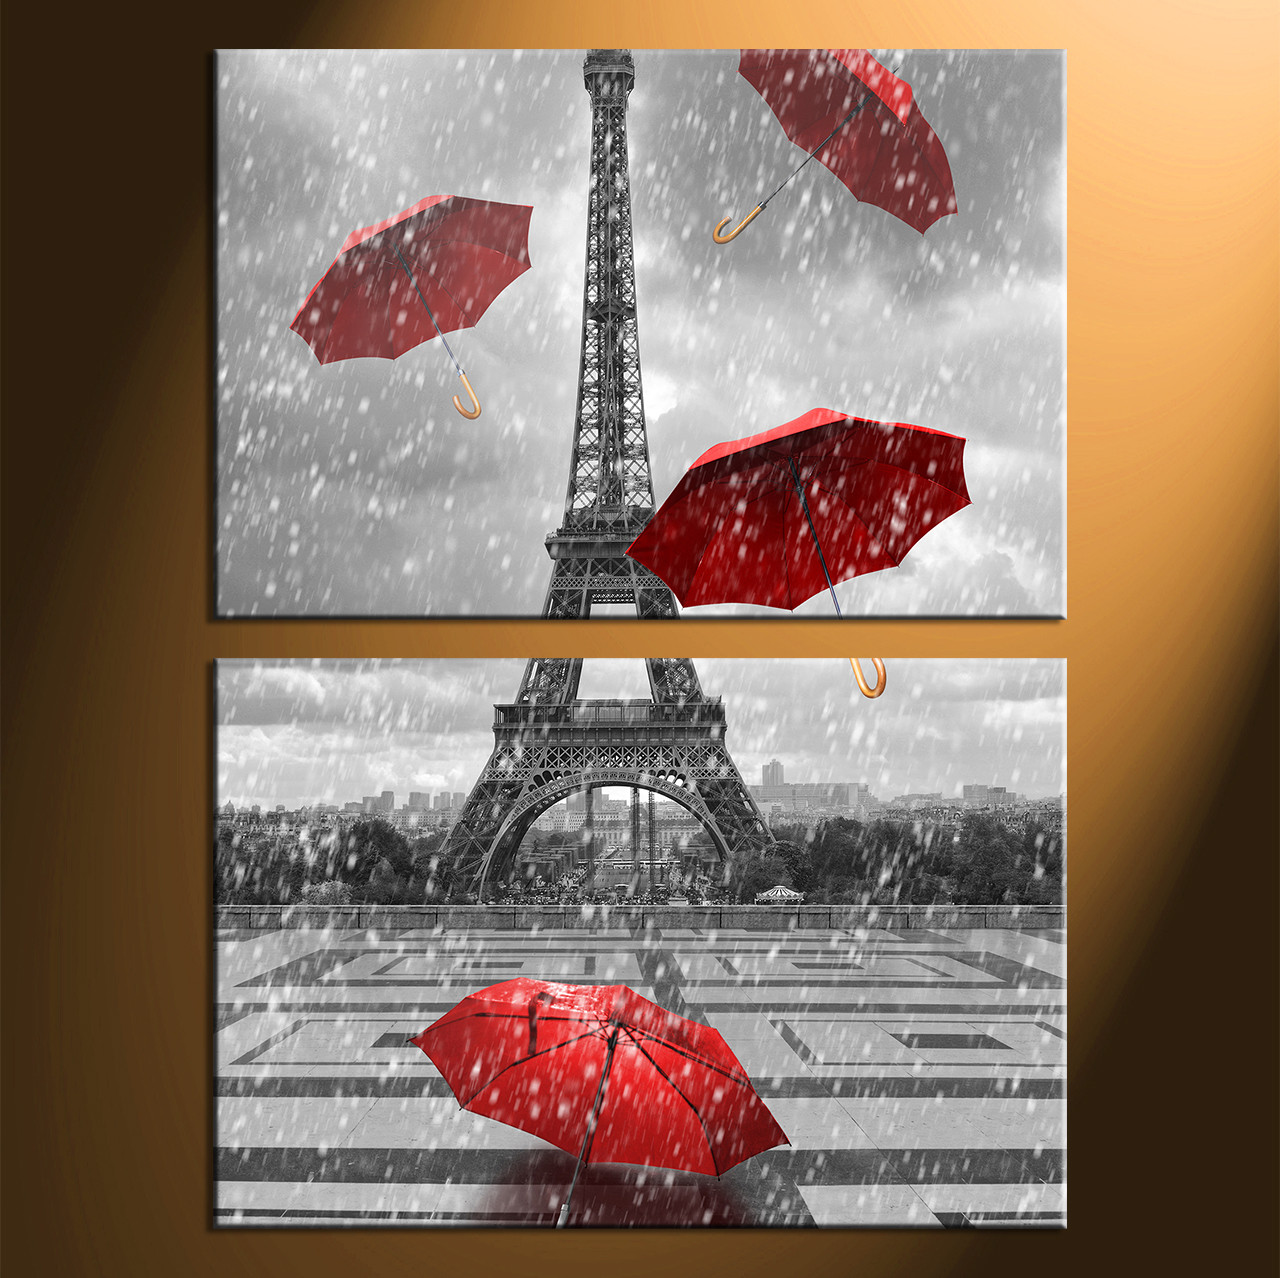 Black And White Pictures With Red Umbrella